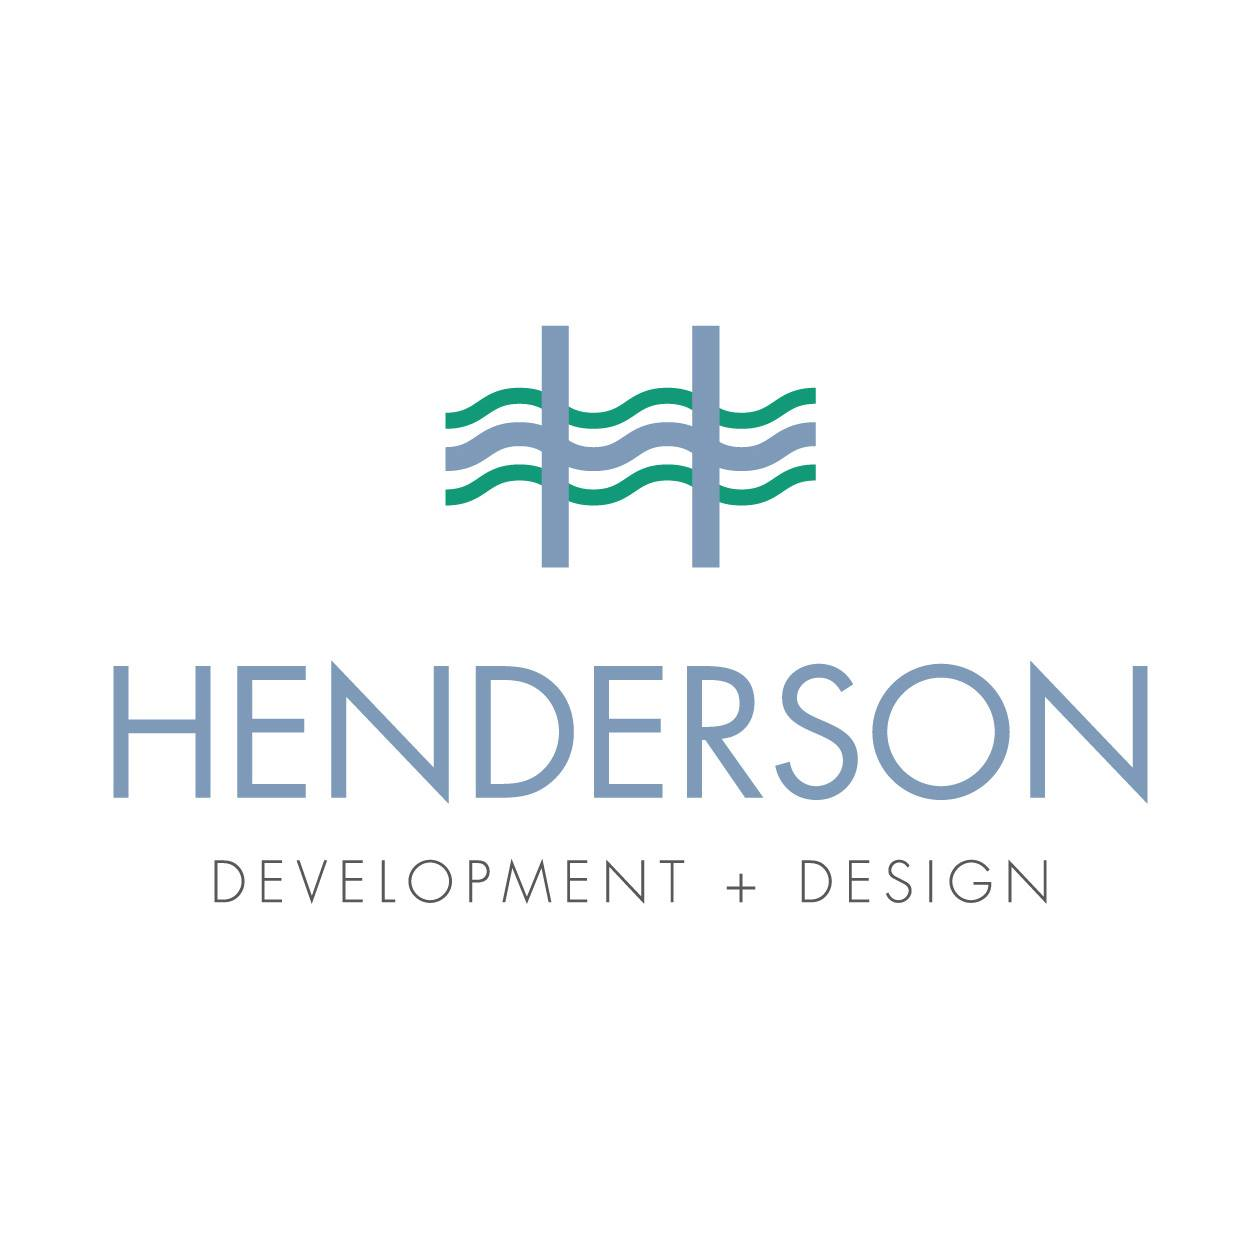 Henderson Development and Design LLC